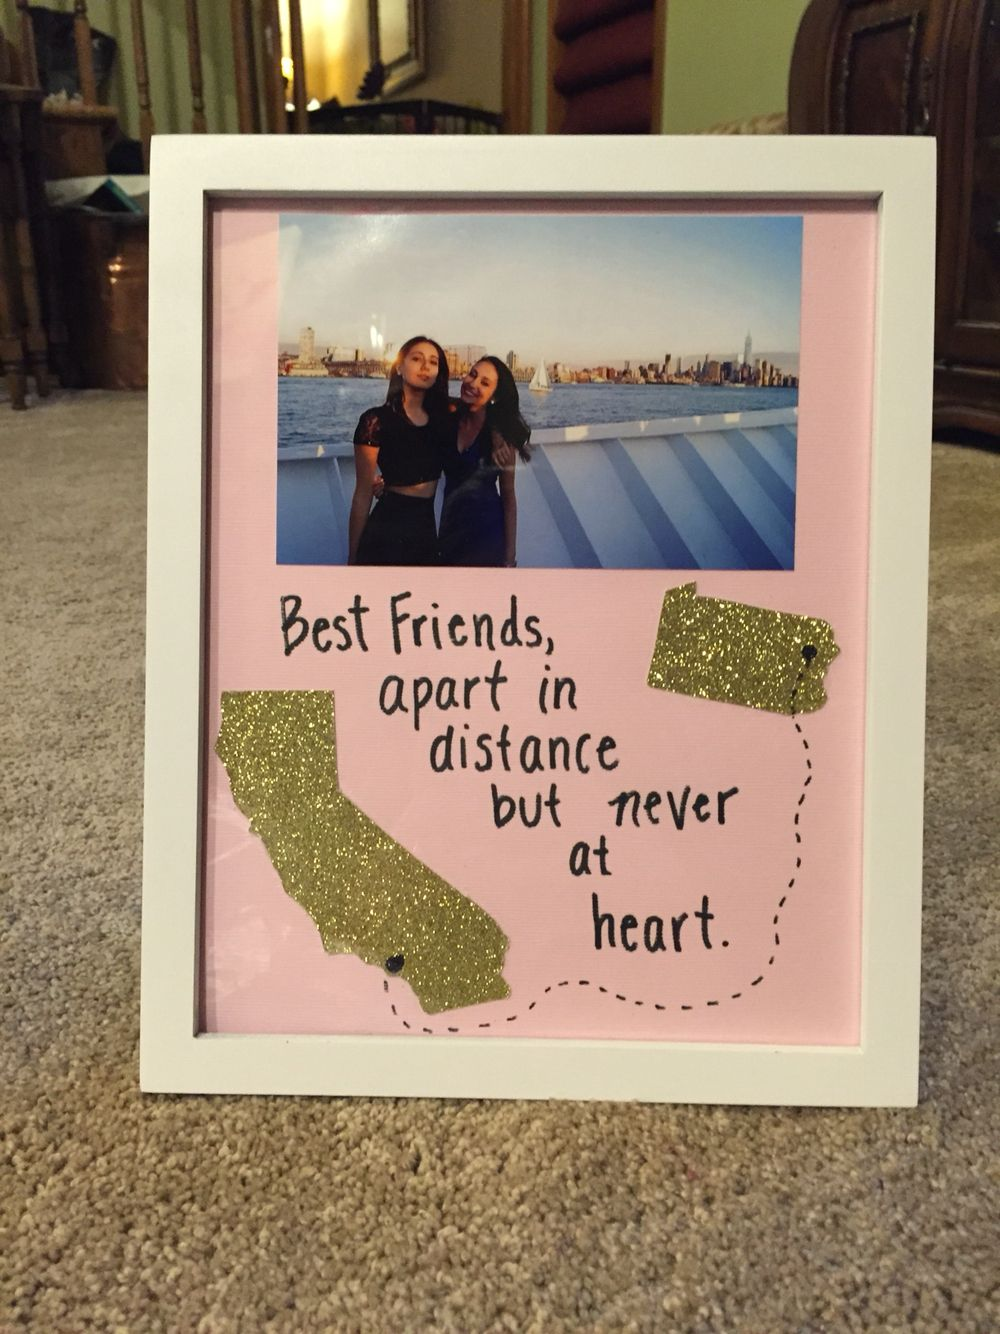 Scrapbook ideas goodbye - Great Gift Ideas For The Travel Obsessed Person In Your Life Made This As A Going Away Gift For The Doctor I Work With Thats Moving To Texas Somet